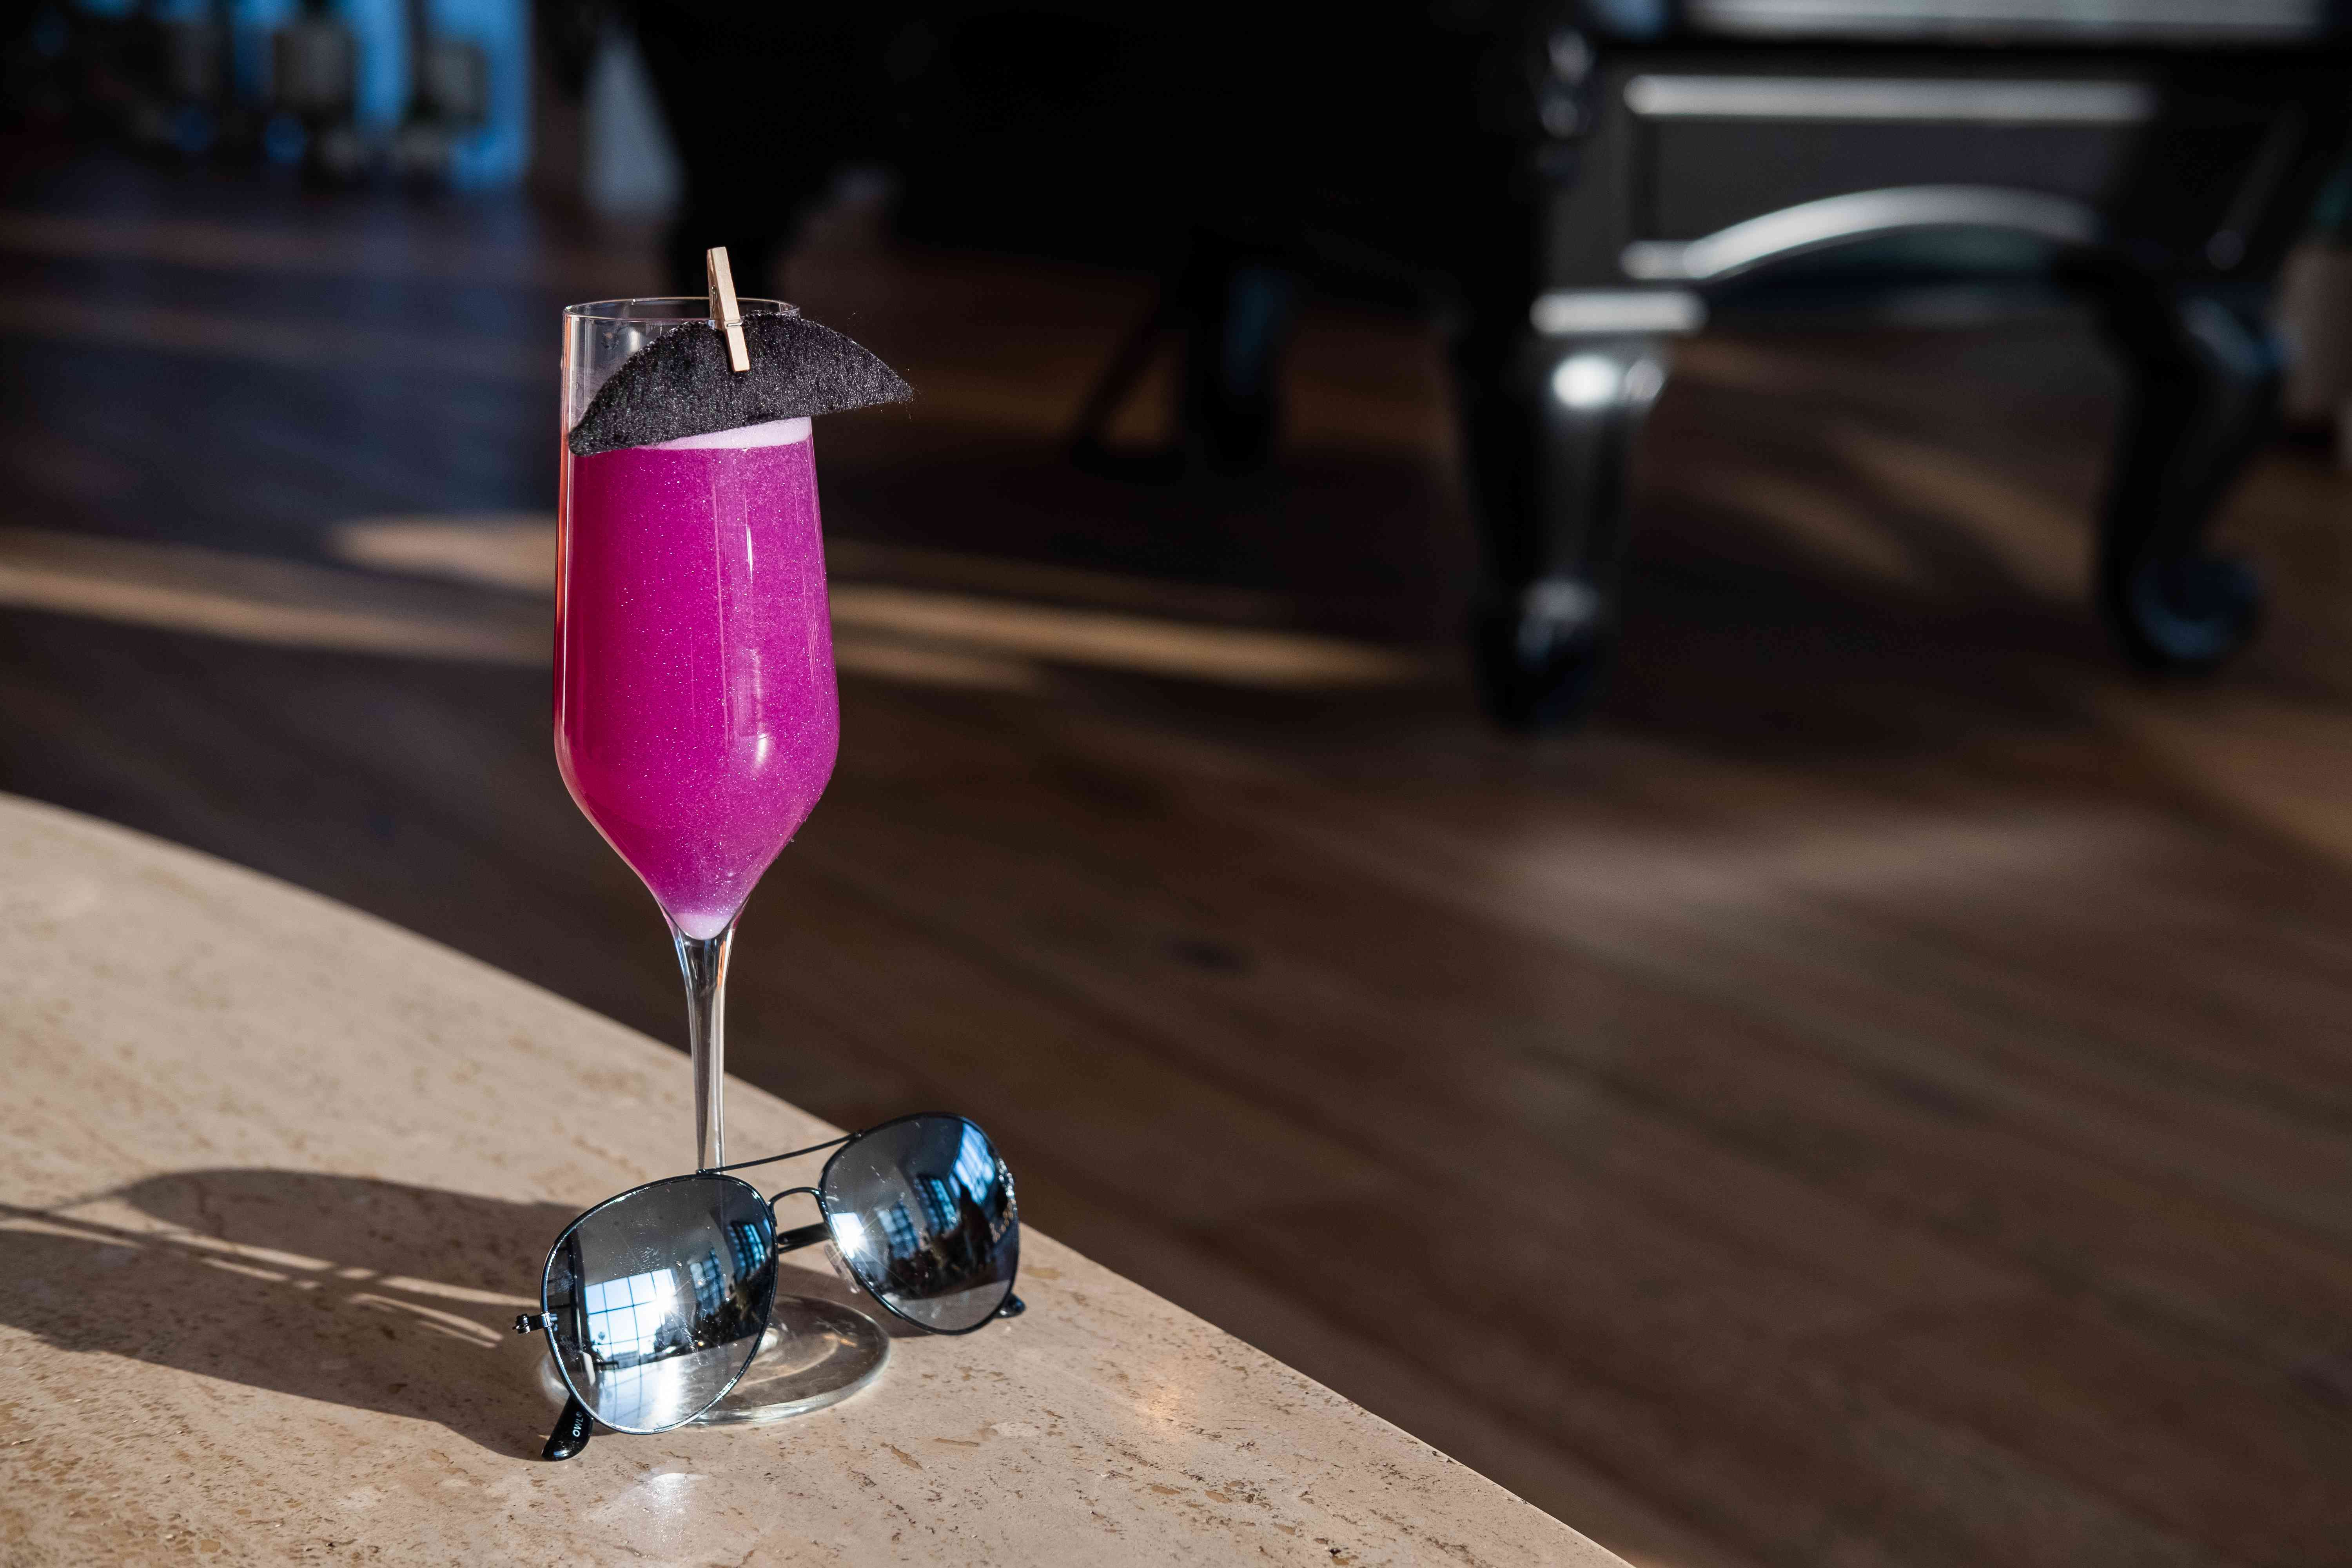 Fuschia colors drink in a champagne flute with a fake mustache clipped to the rim and a pair of aviator sunglasses at the base